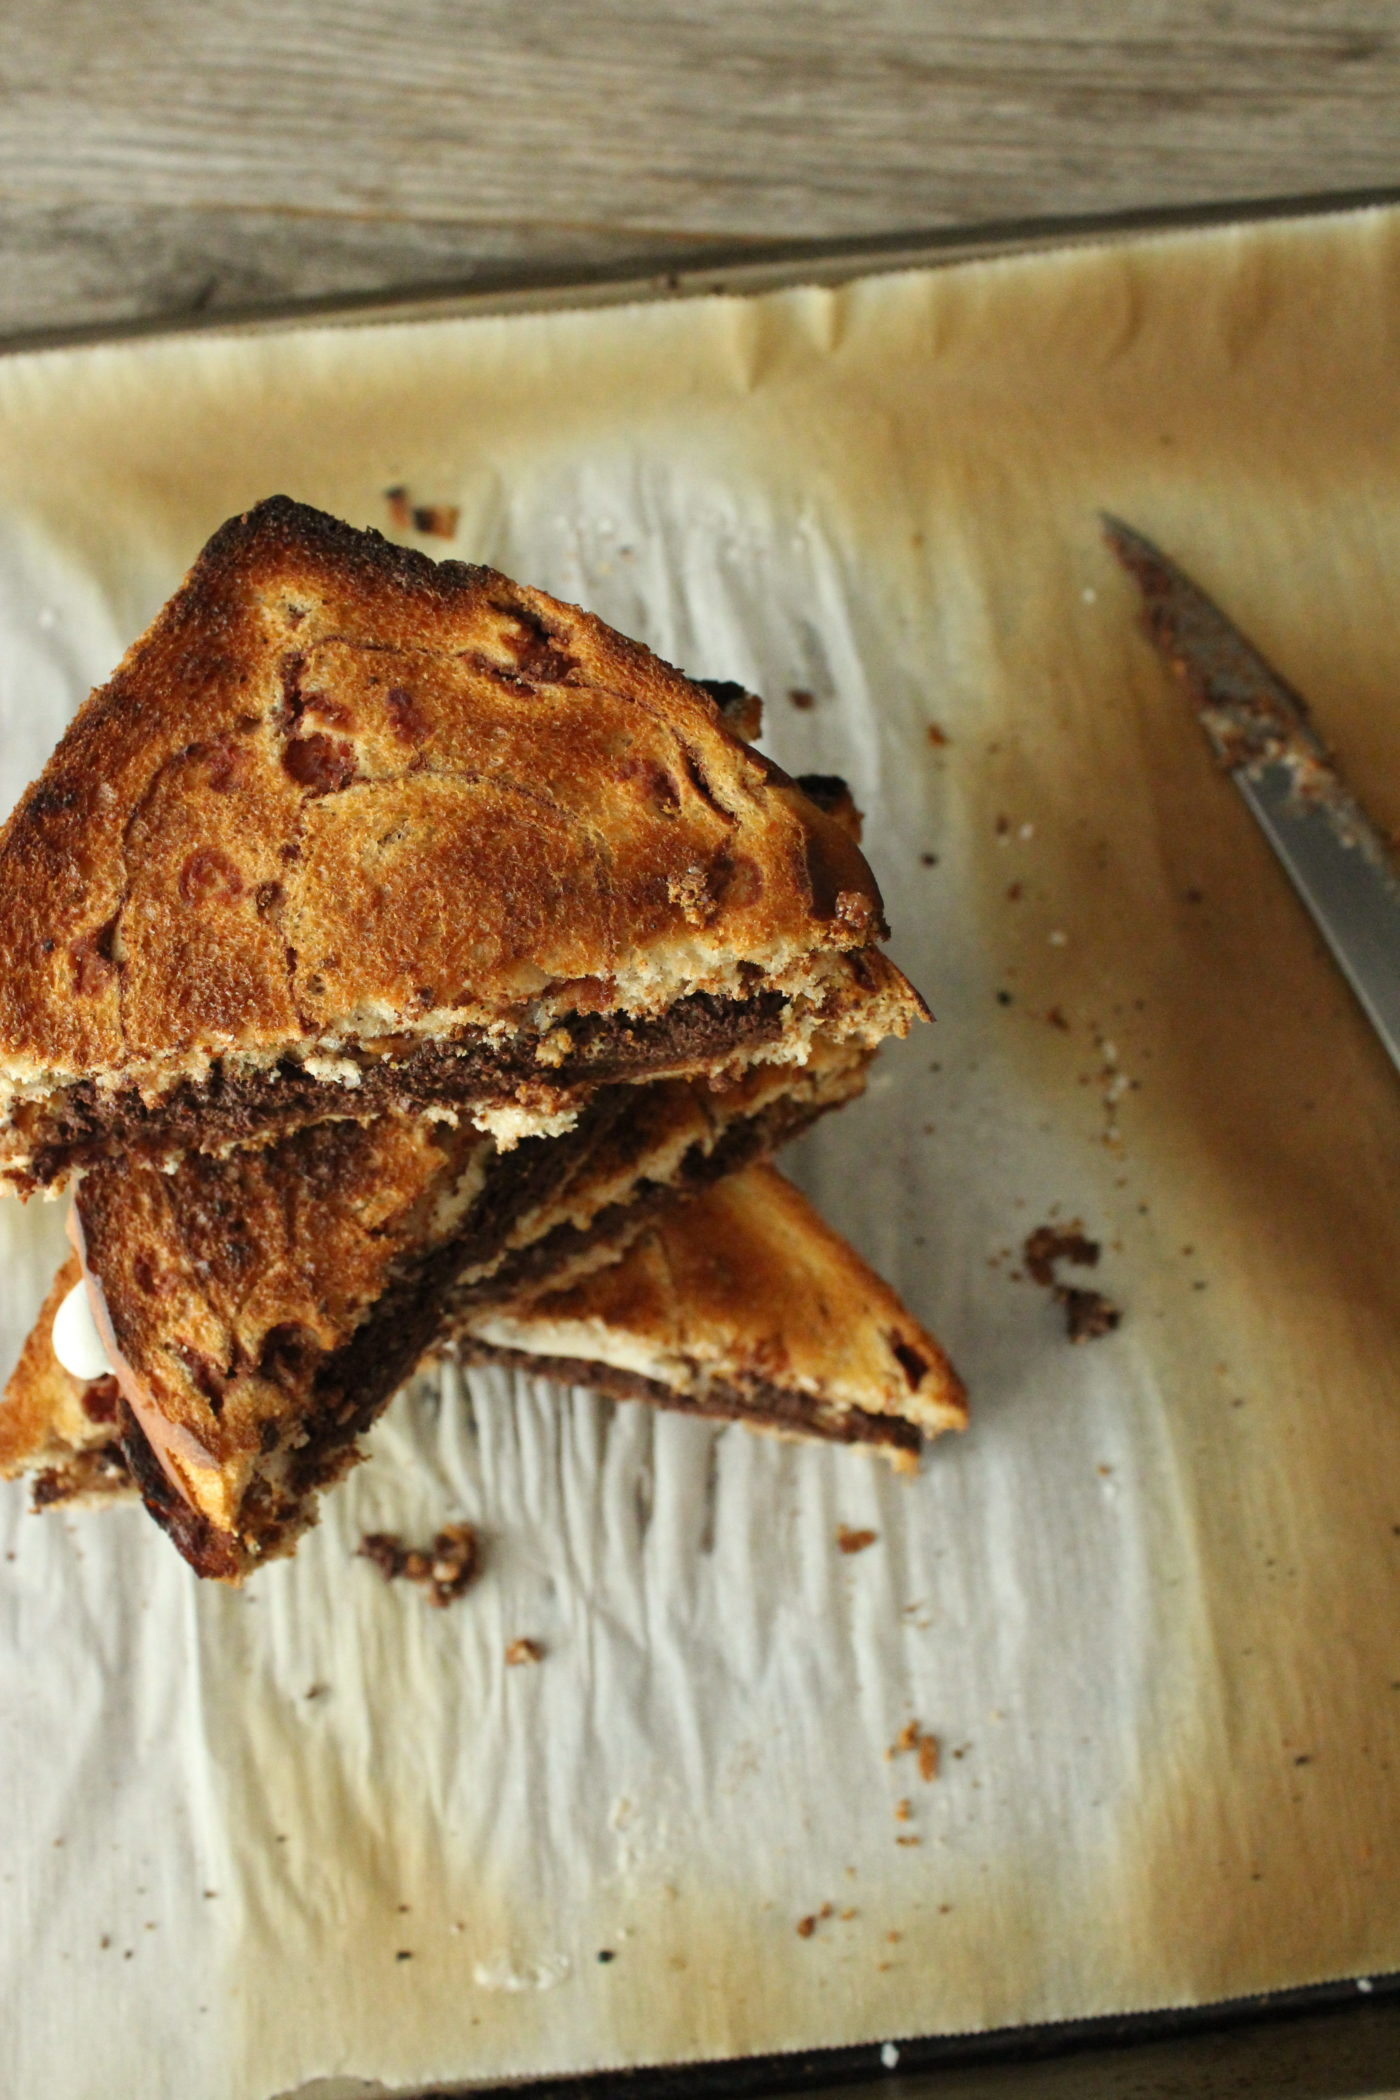 Burnt cinnamon toast s'mores | Eat.Drink.Frolic.